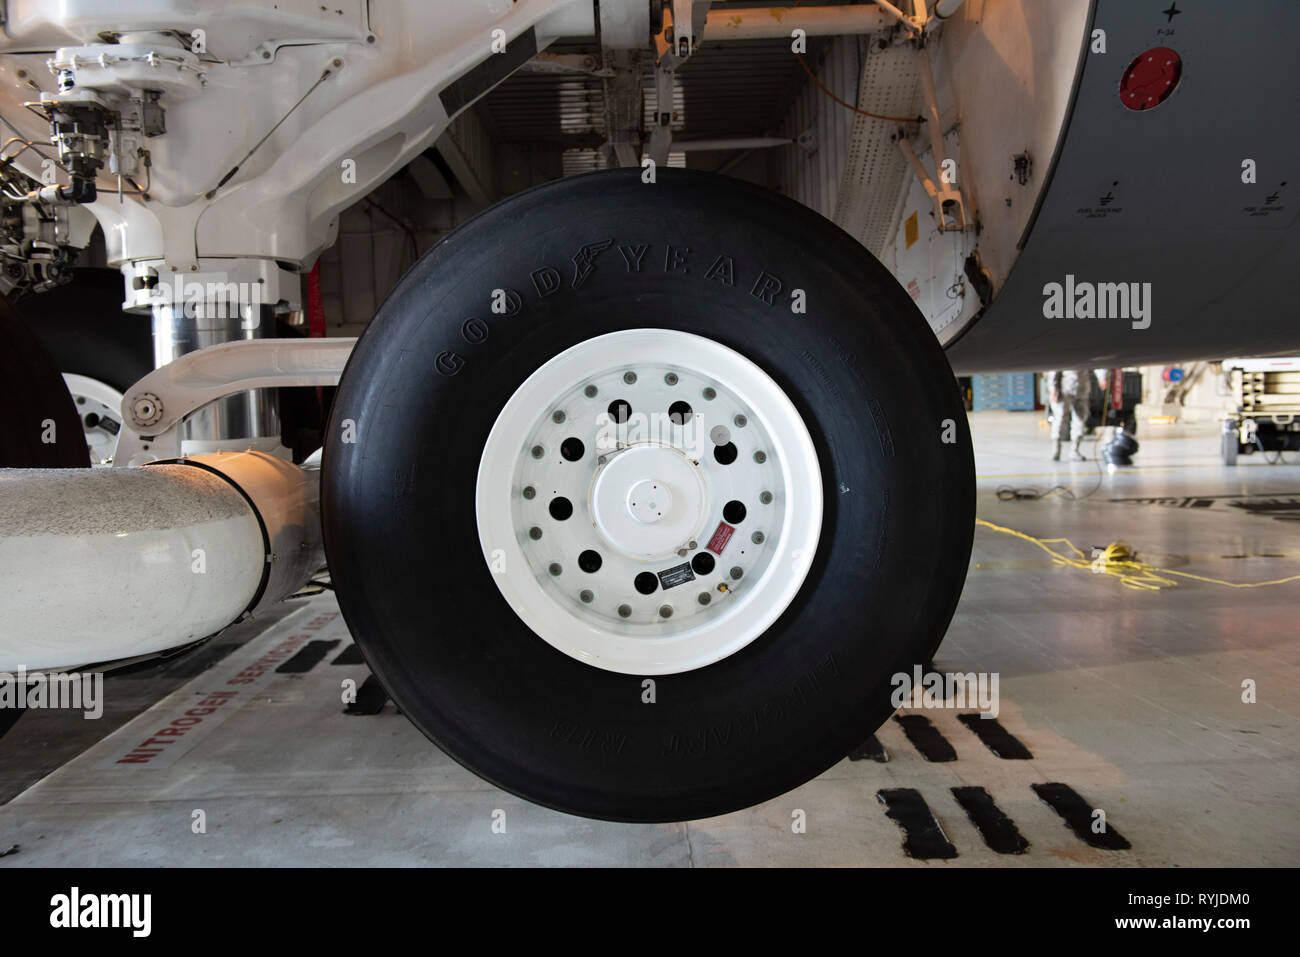 The rear wheel assembly of a C-5M Super Galaxy aircraft is serviced inside a hangar, March 13, 2019 at Travis Air Force Base, California. The C-5M Super Galaxy's high flotation main landing gear provides 28 wheels to distribute gross weight on paved or earth surfaces. The rear main landing gear can be made to caster on an angle to make a smaller turning radius, and rotates 90 degrees after takeoff before being retracted. (U.S. Air Force photo by Heide Couch) - Stock Image